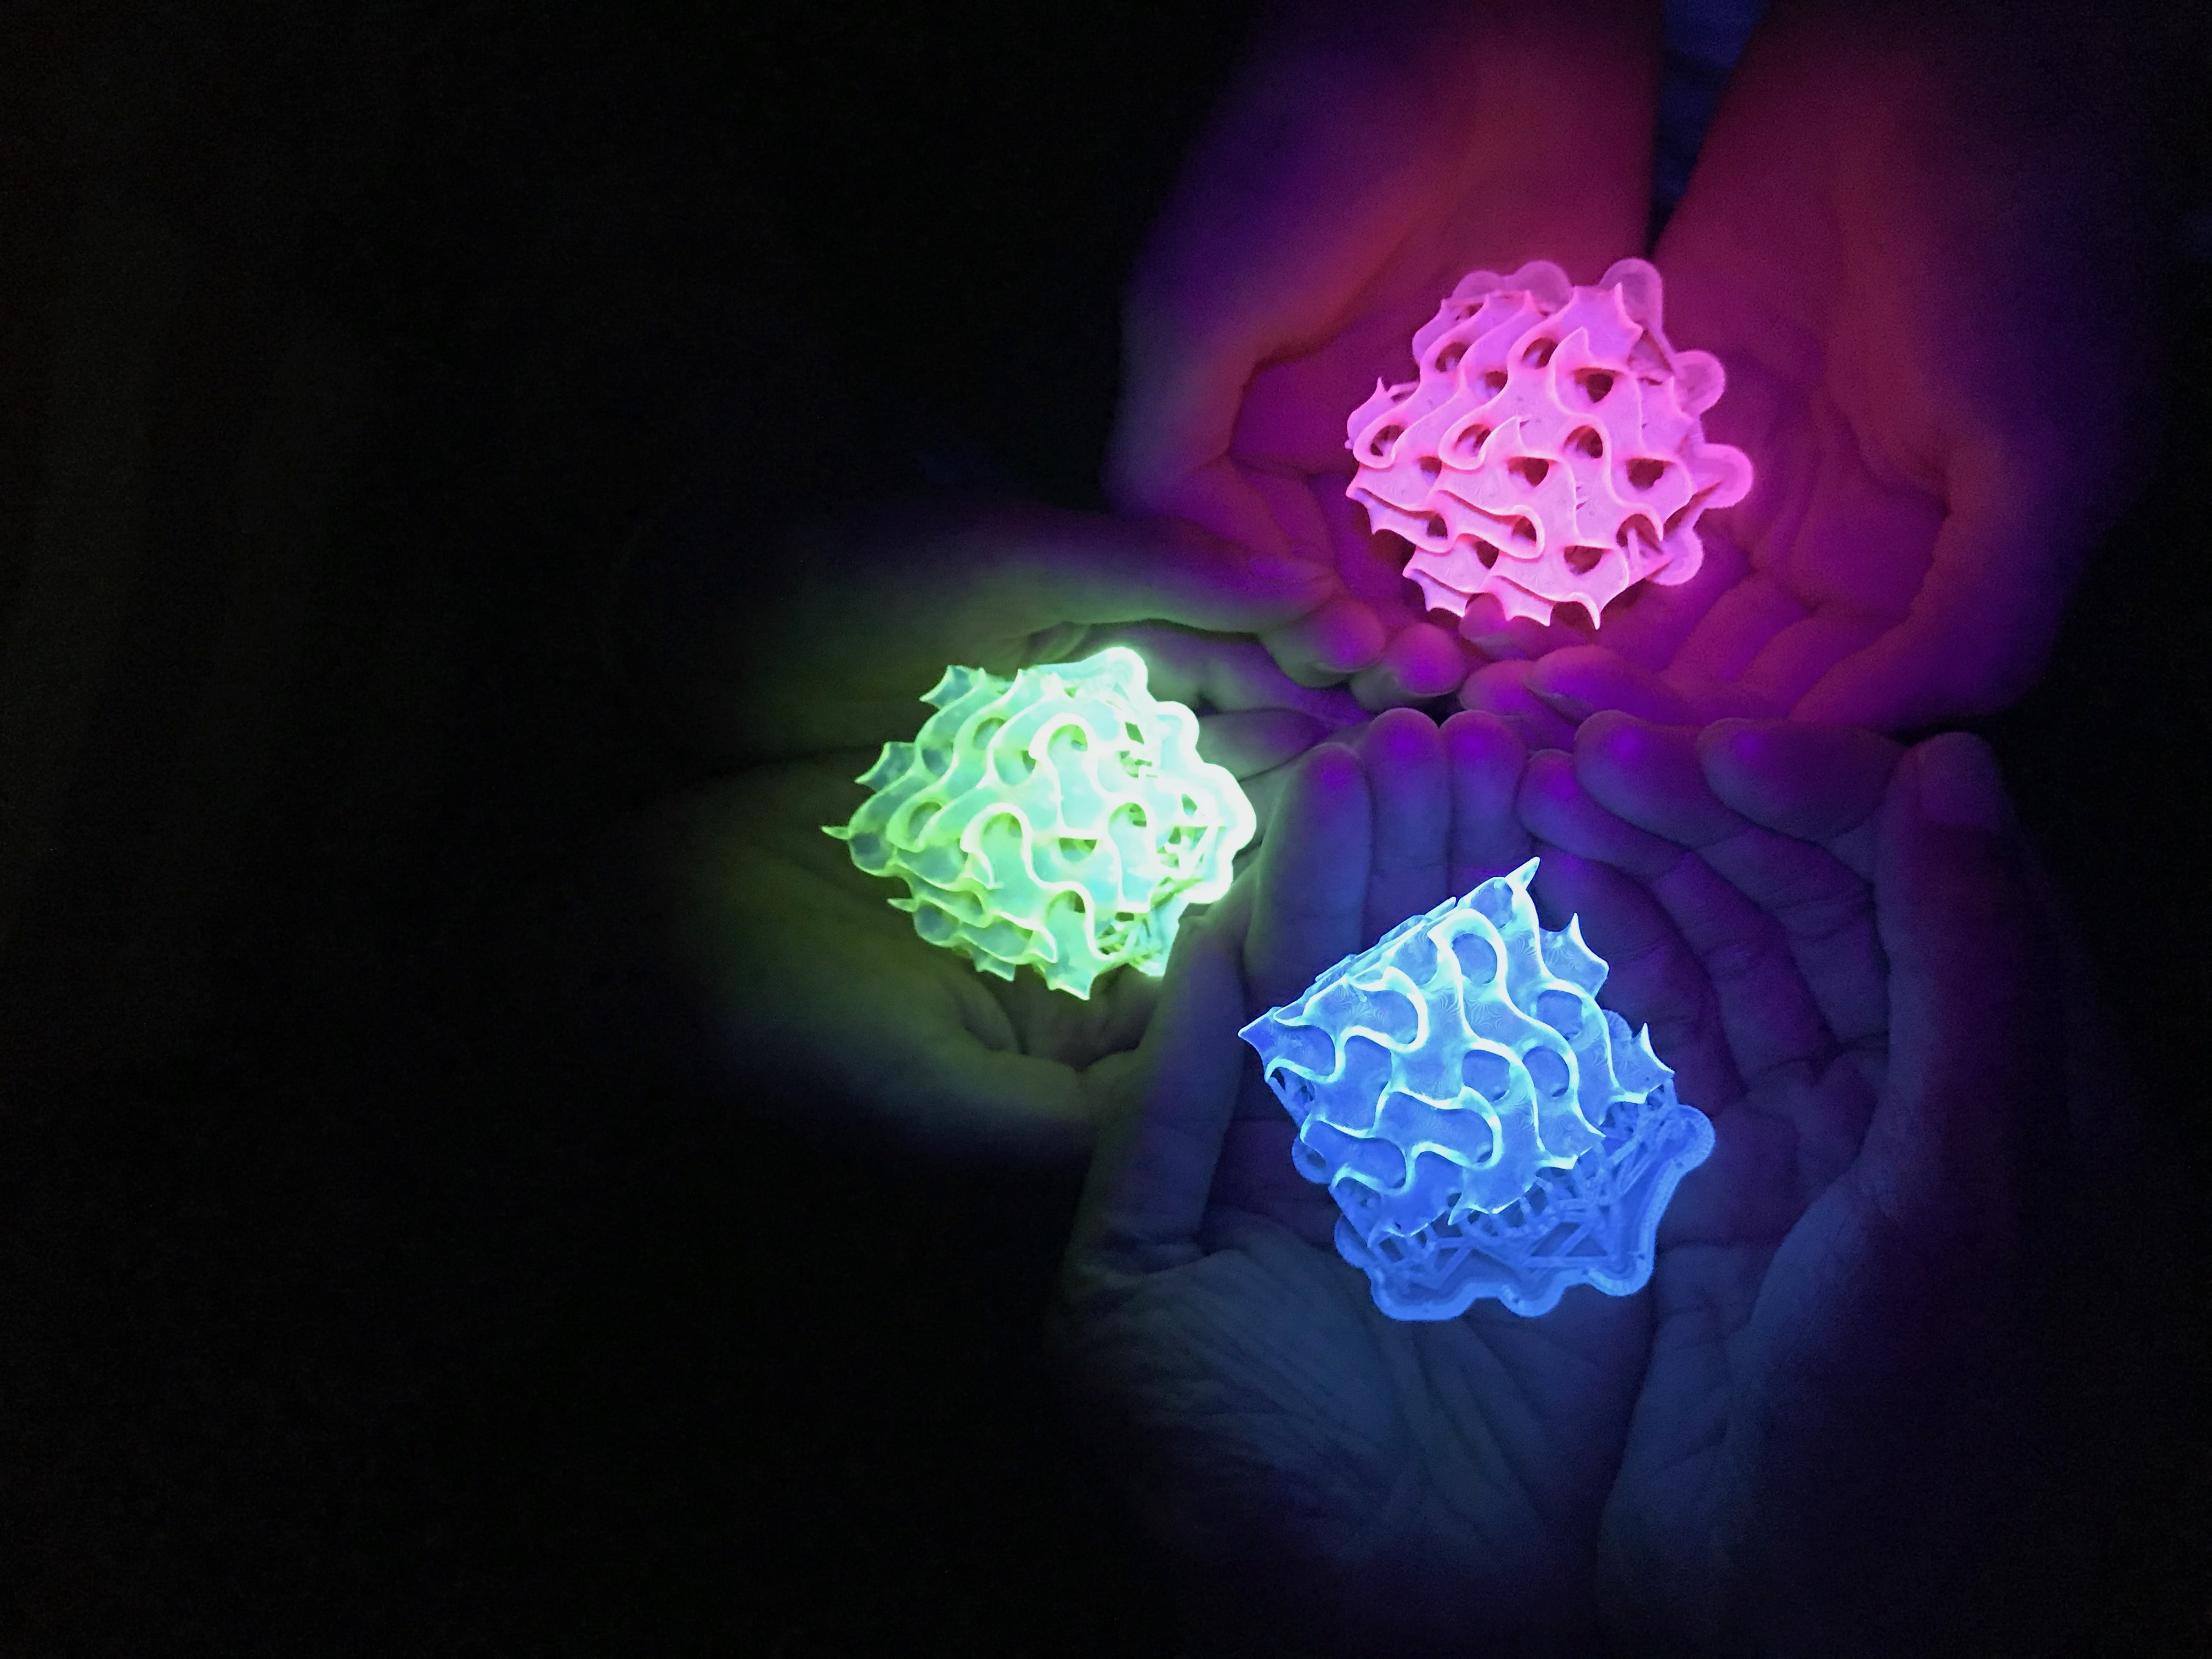 three pairs of hands holding Glowing 3D-printed gyroids